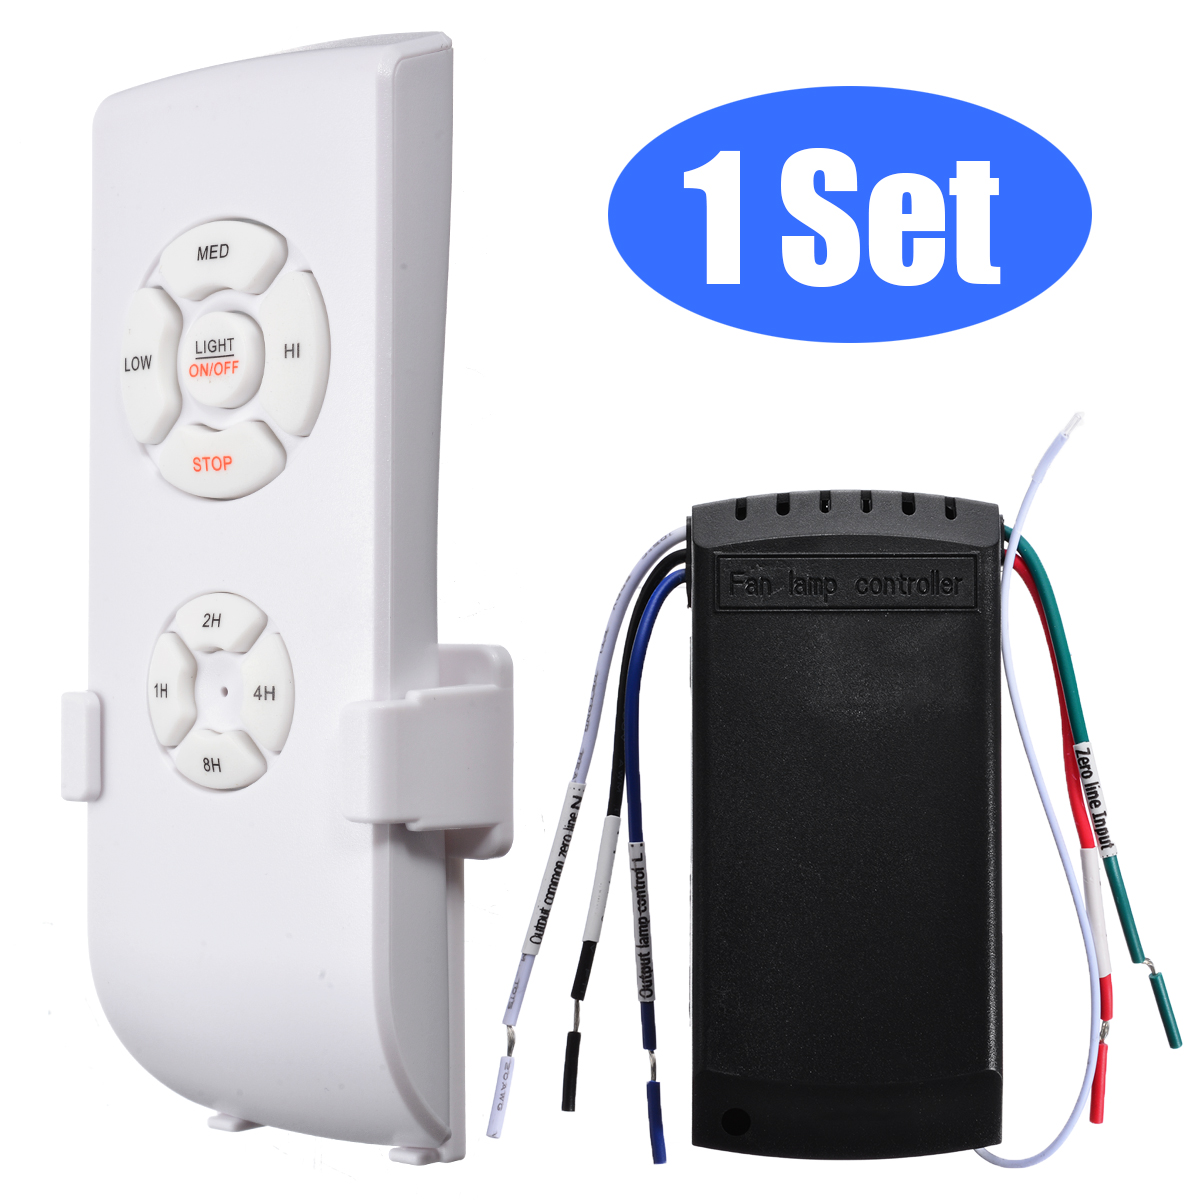 90-265V Home Ceiling Fan Light Wind Speed Adjustment Timing Remote Controller Universal Wireless Switch Controller